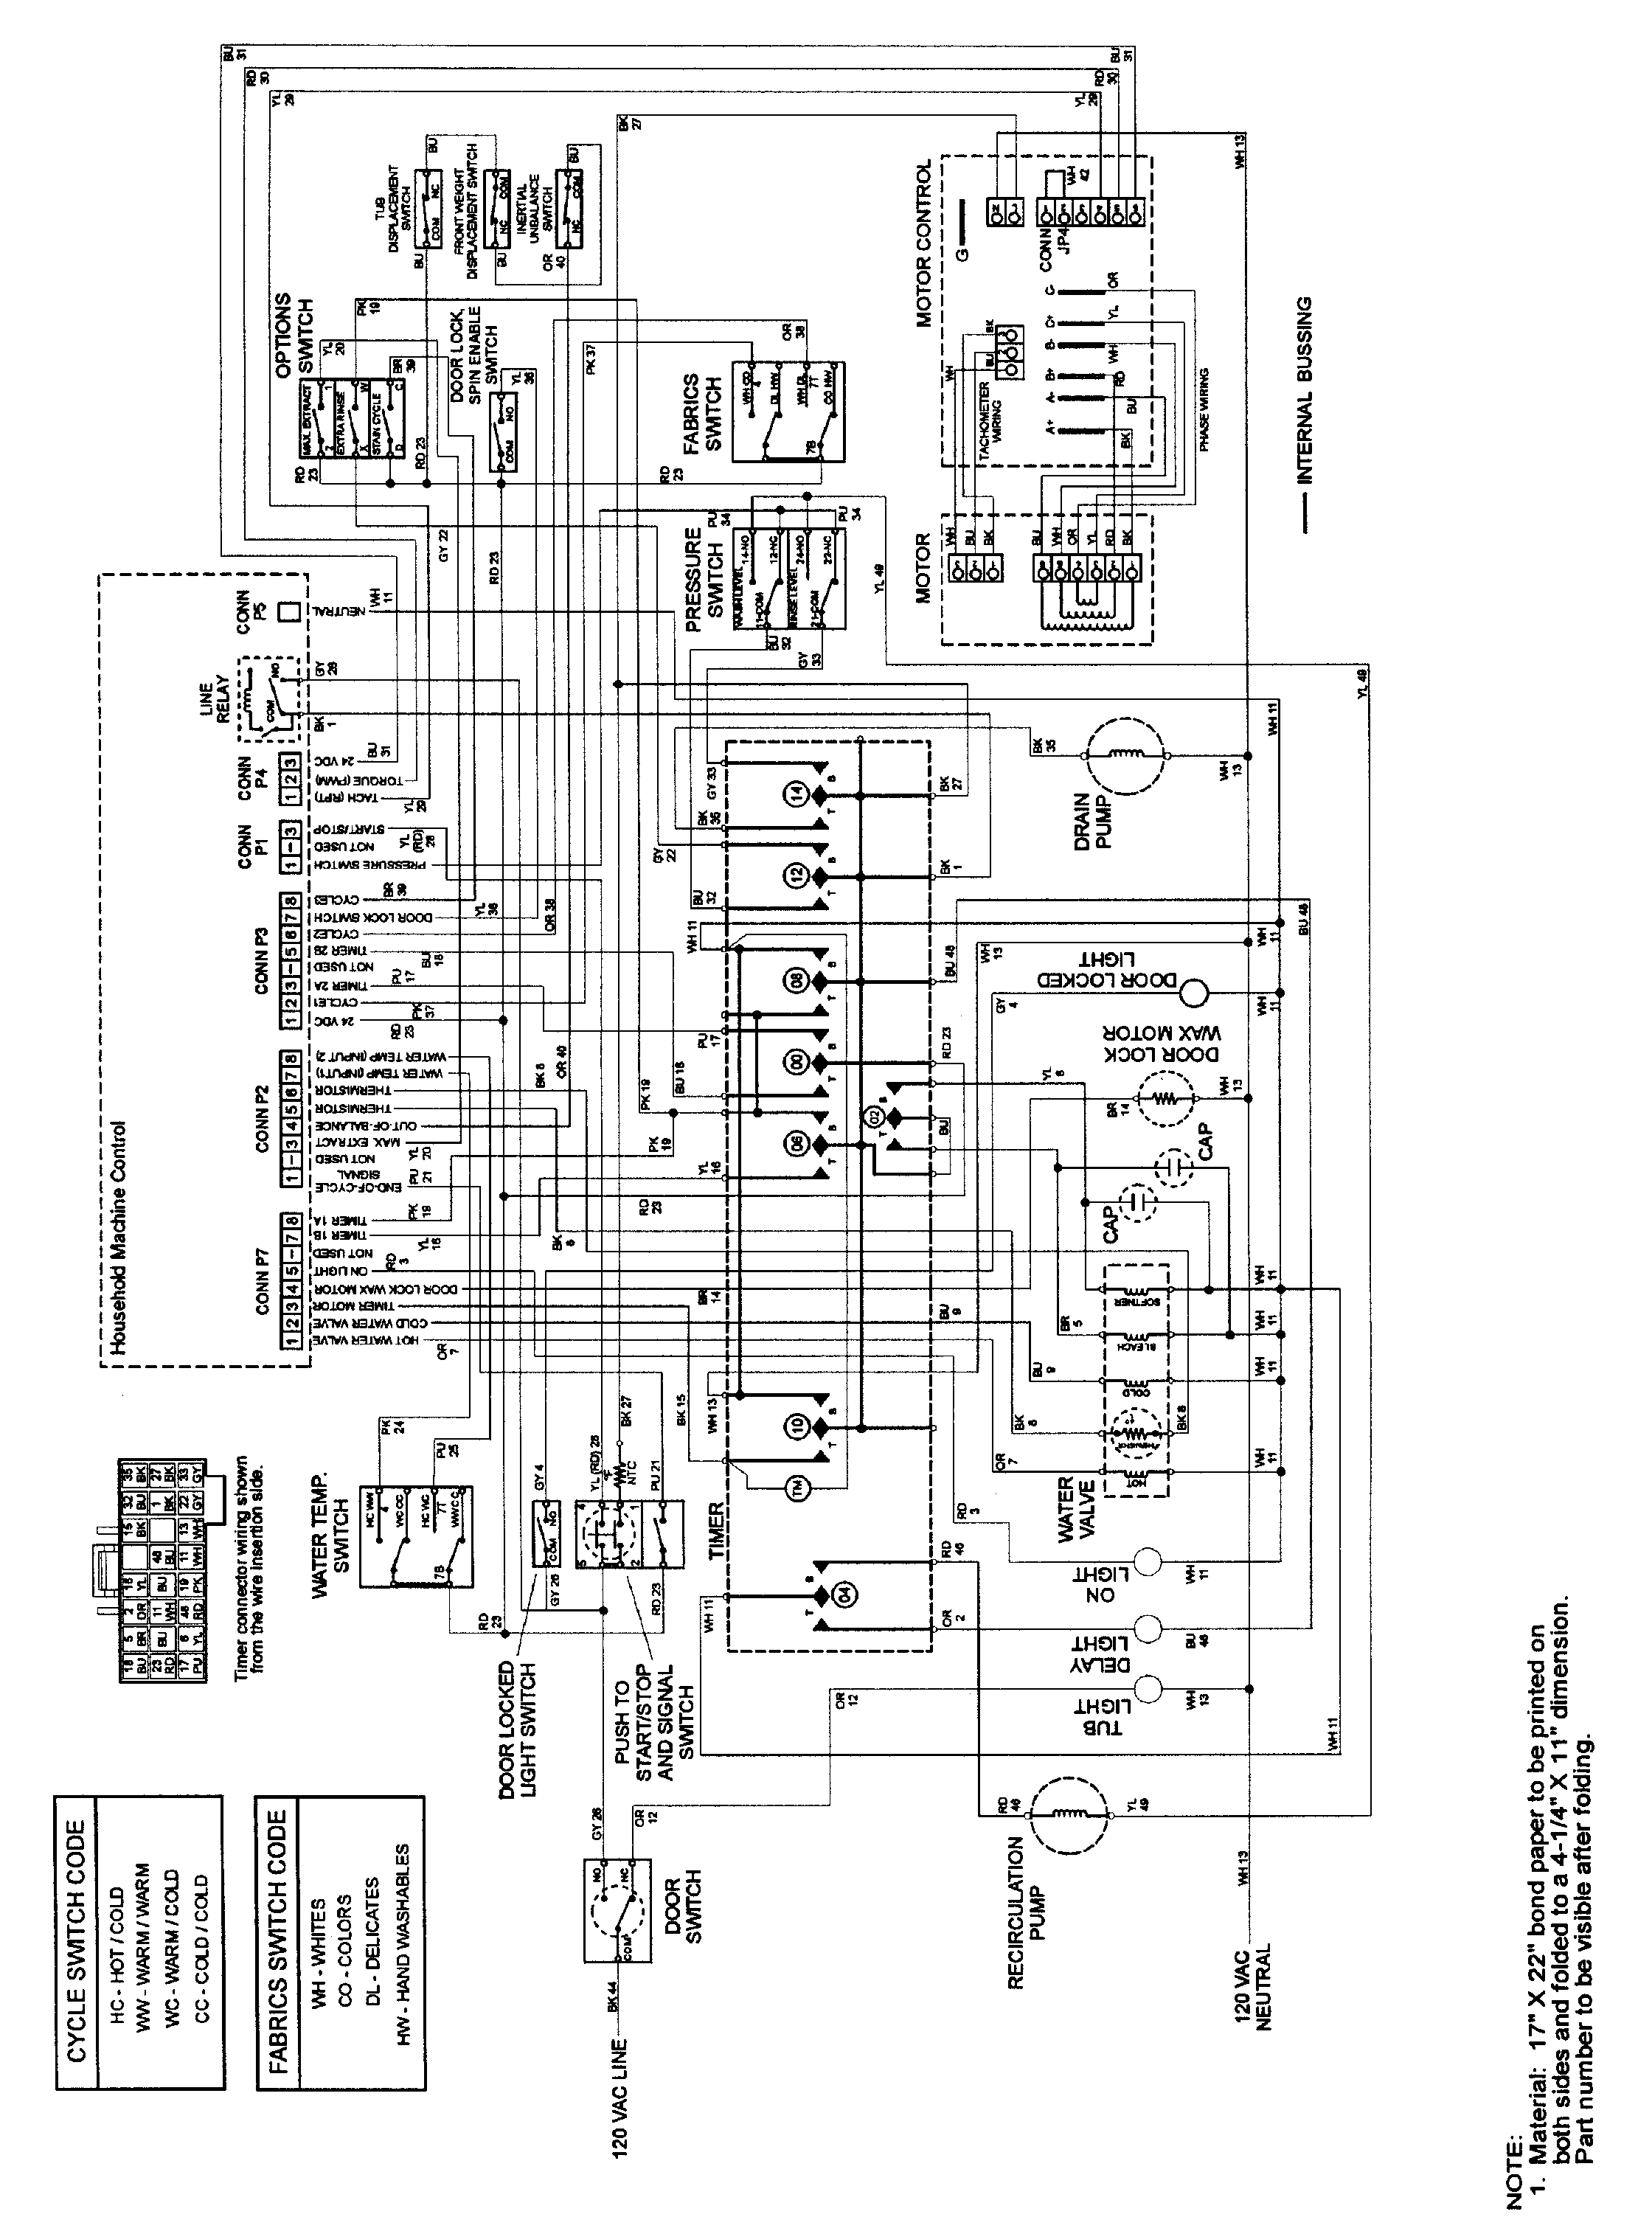 changed the bearingd on a mah5500 neptune washer i get th With board the wires got pulled off or pinched here is some wiring diagrams